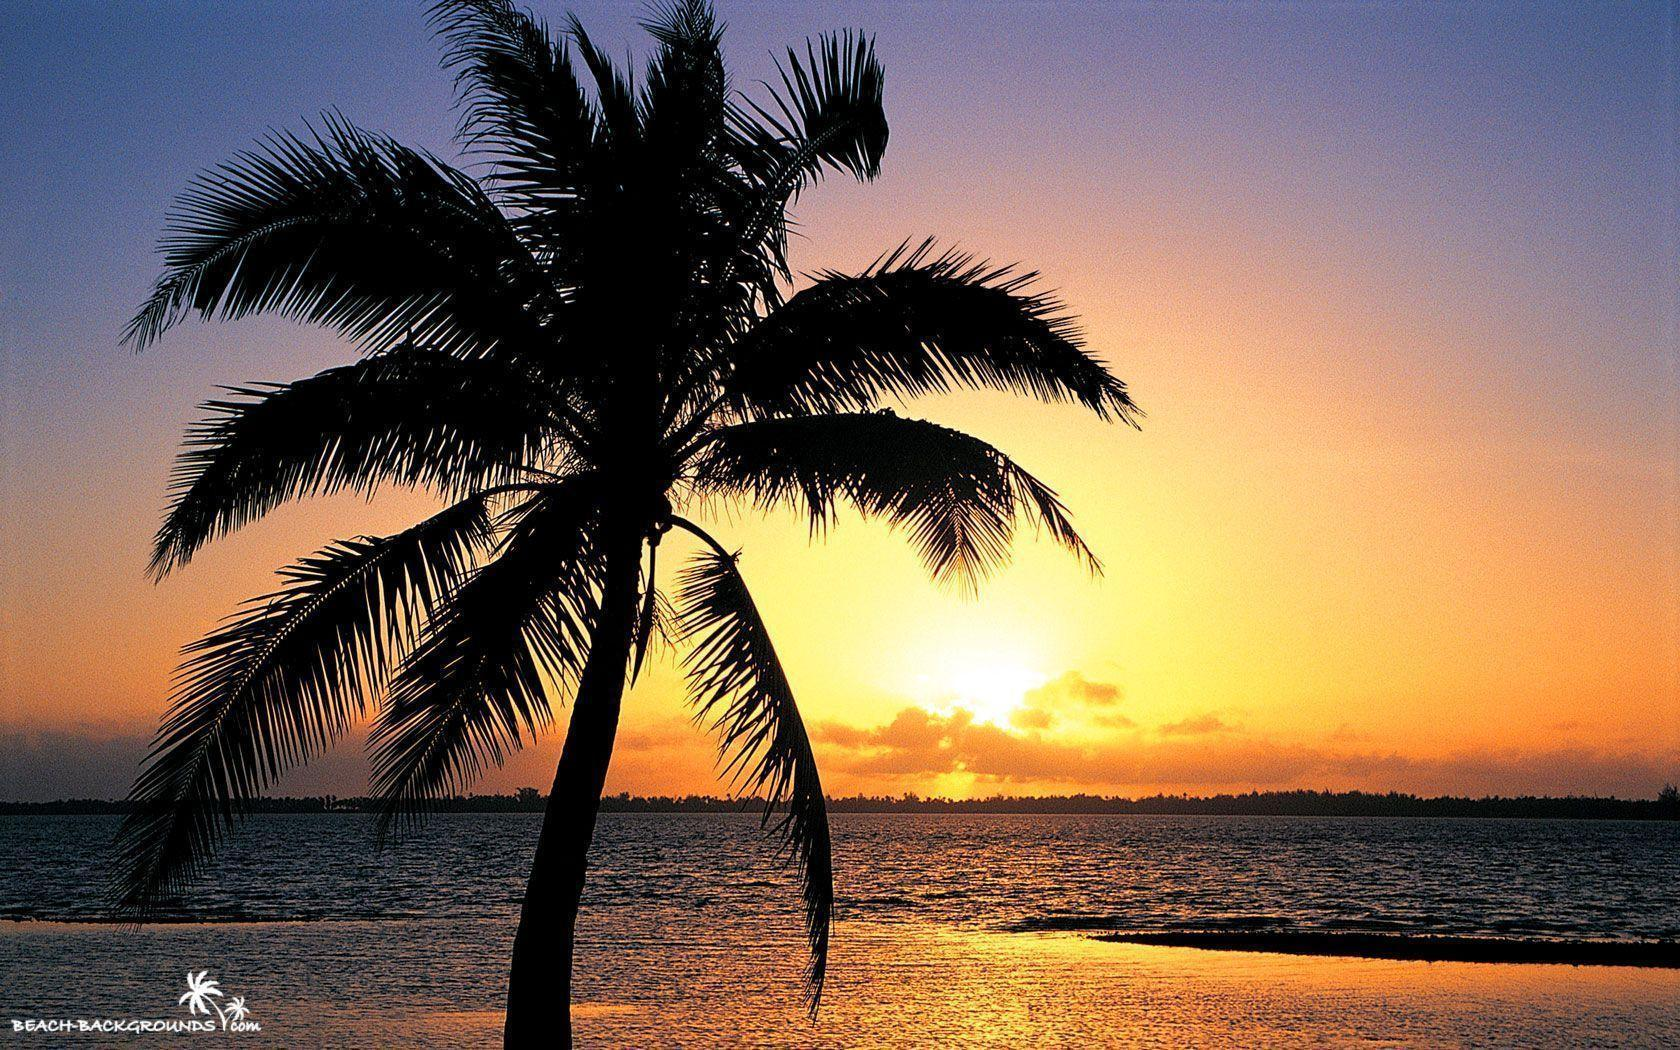 Beach Sunset Backgrounds 33170 Hd Wallpapers in Beach n Tropical ...